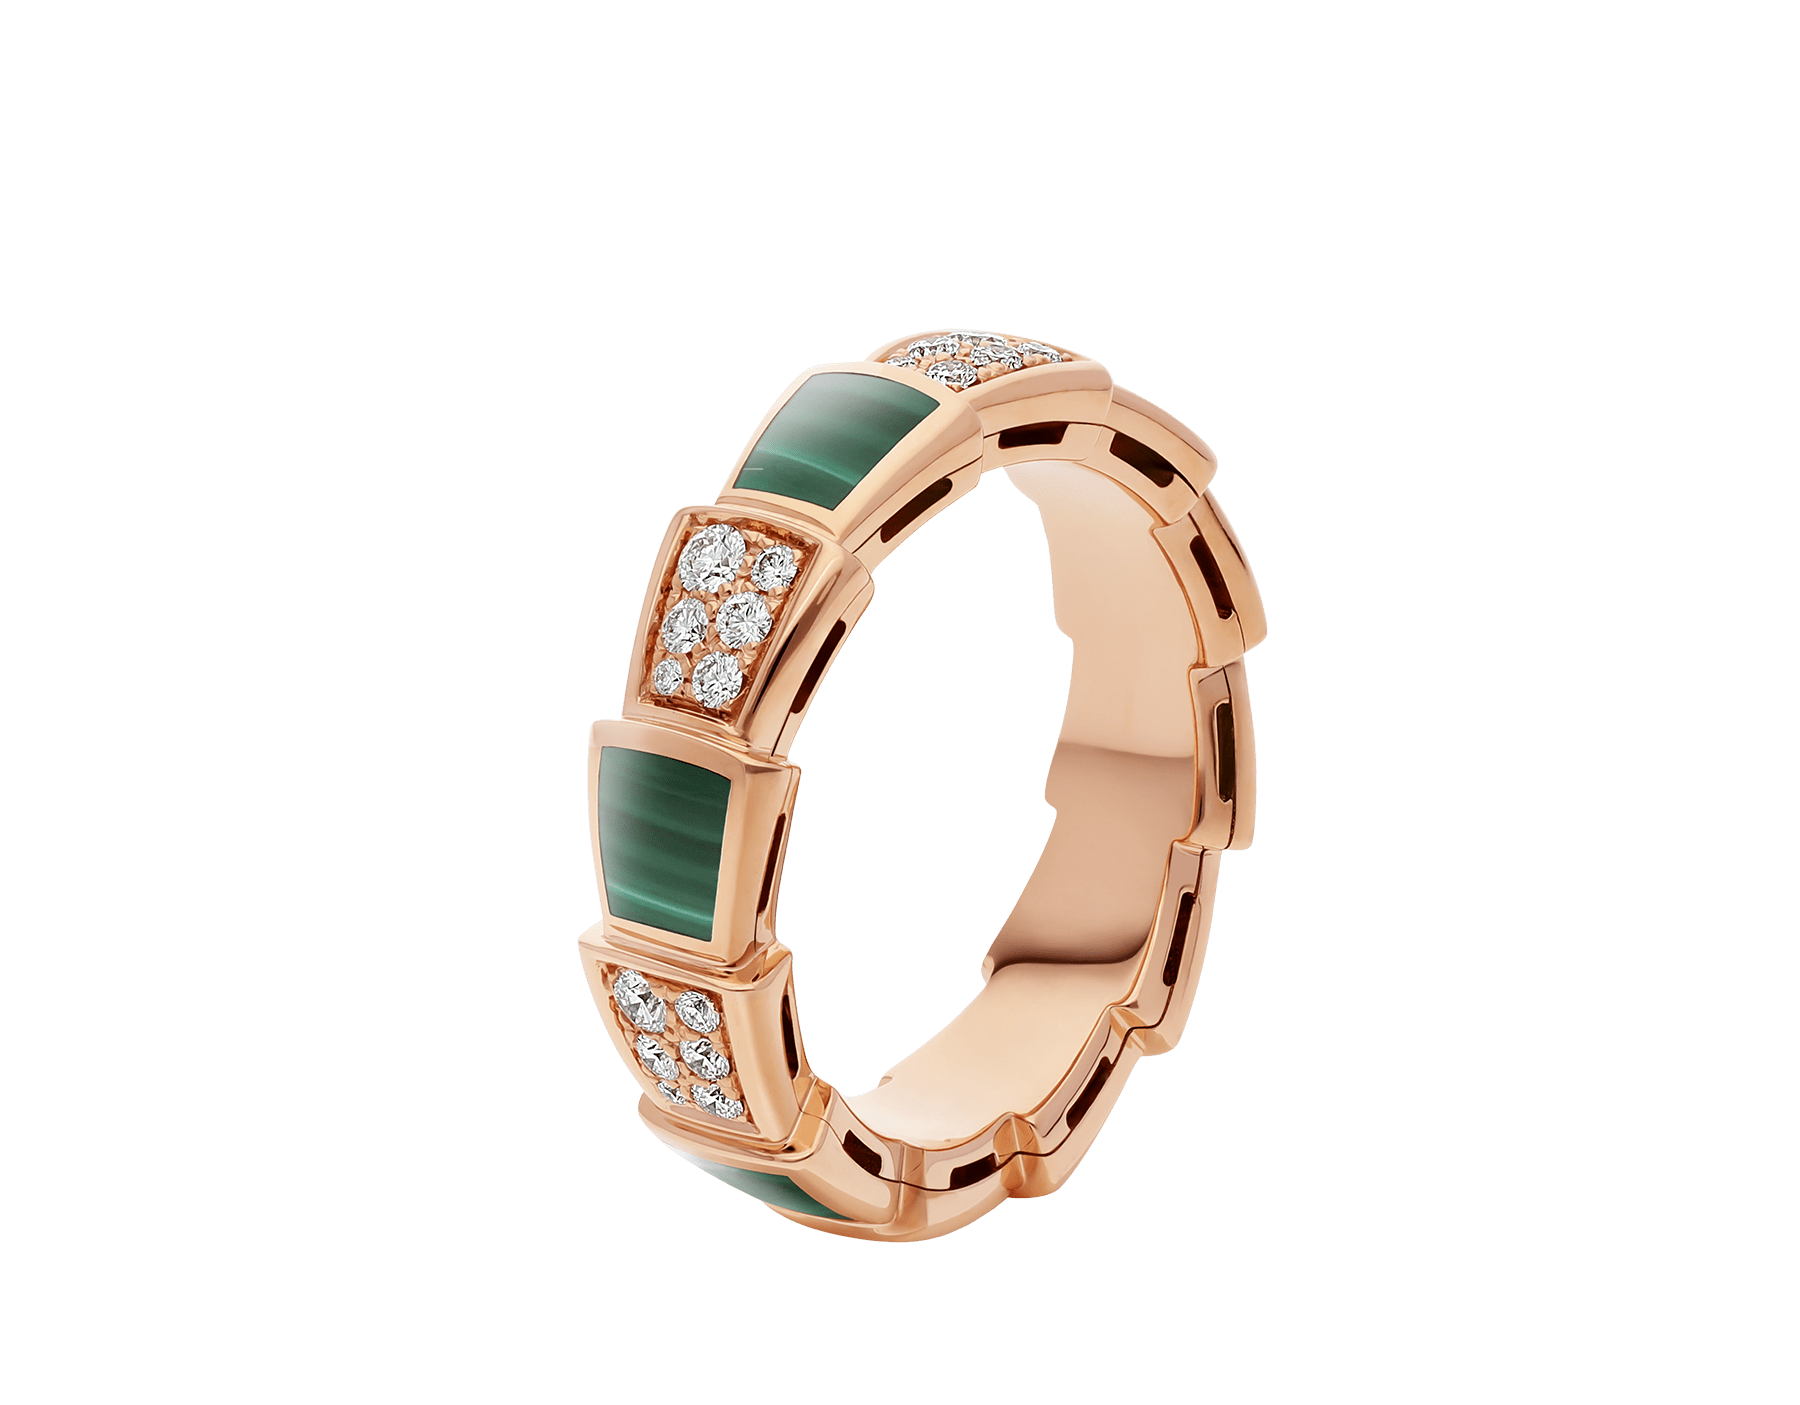 Serpenti Viper 18 kt rose gold ring set with malachite elements and pavé diamonds AN858203 image 1